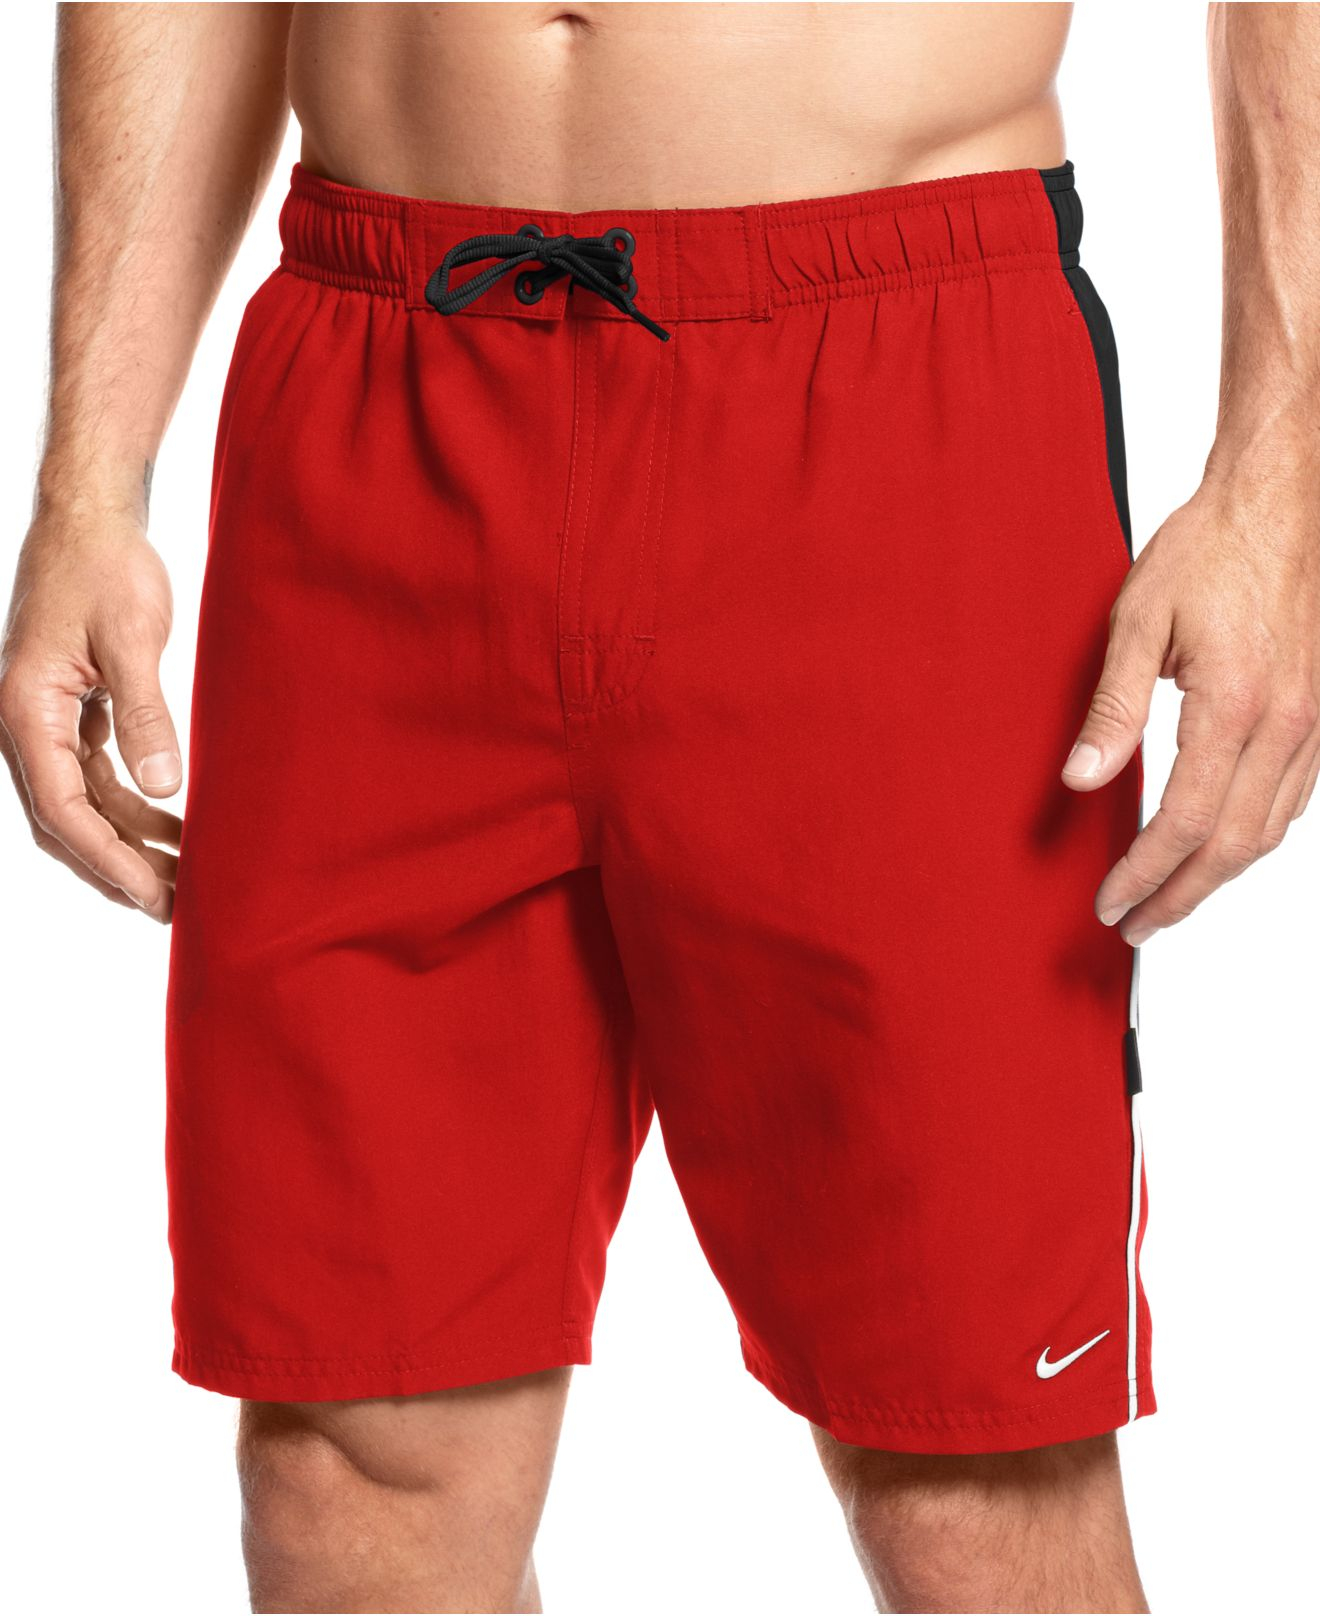 be658b3c18ca2 Nike Big And Tall Volley Swim Trunks in Red for Men - Lyst